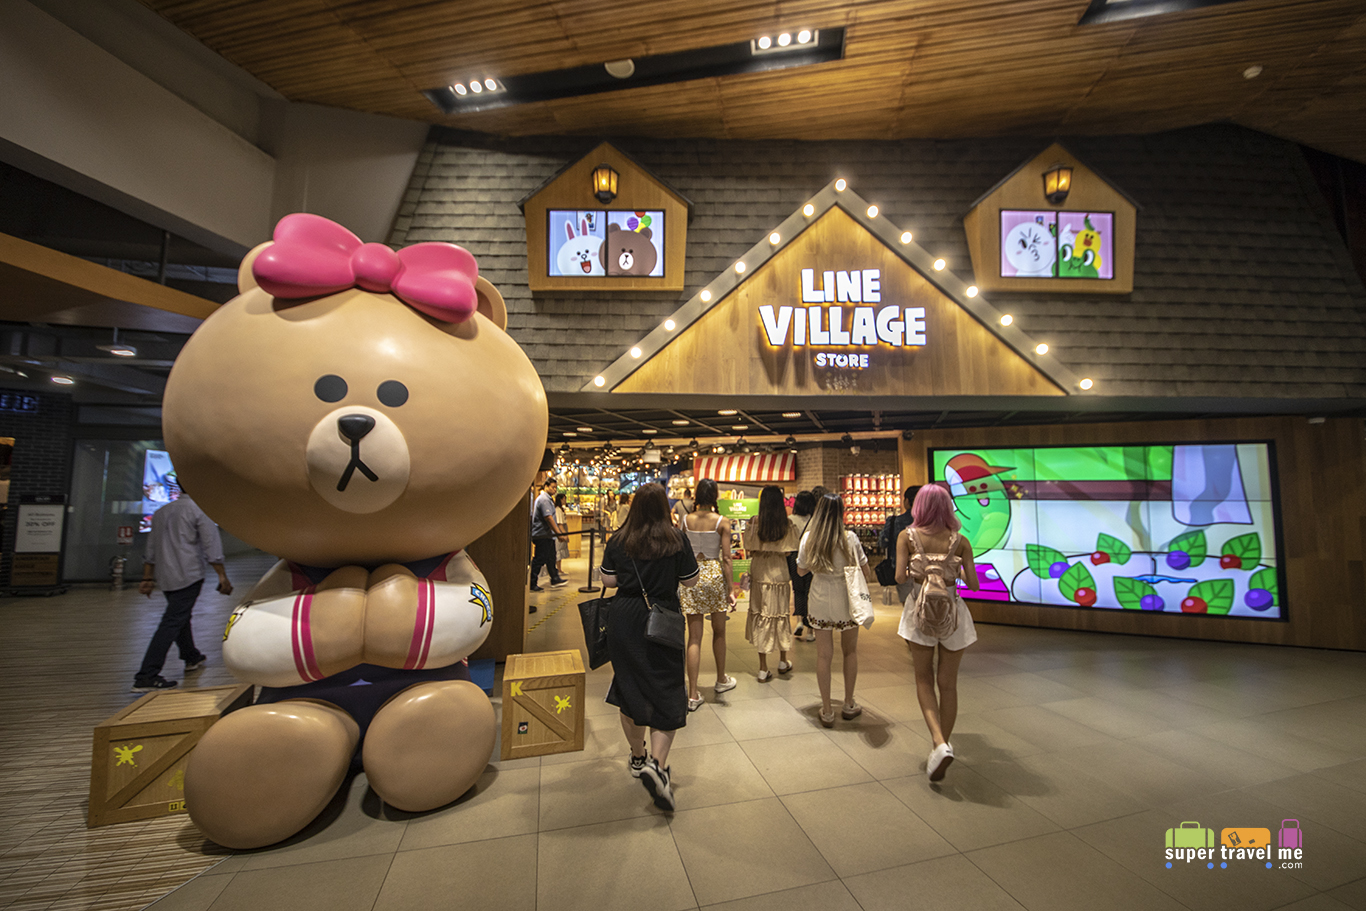 LINE VILLAGE STORE in Bangkok